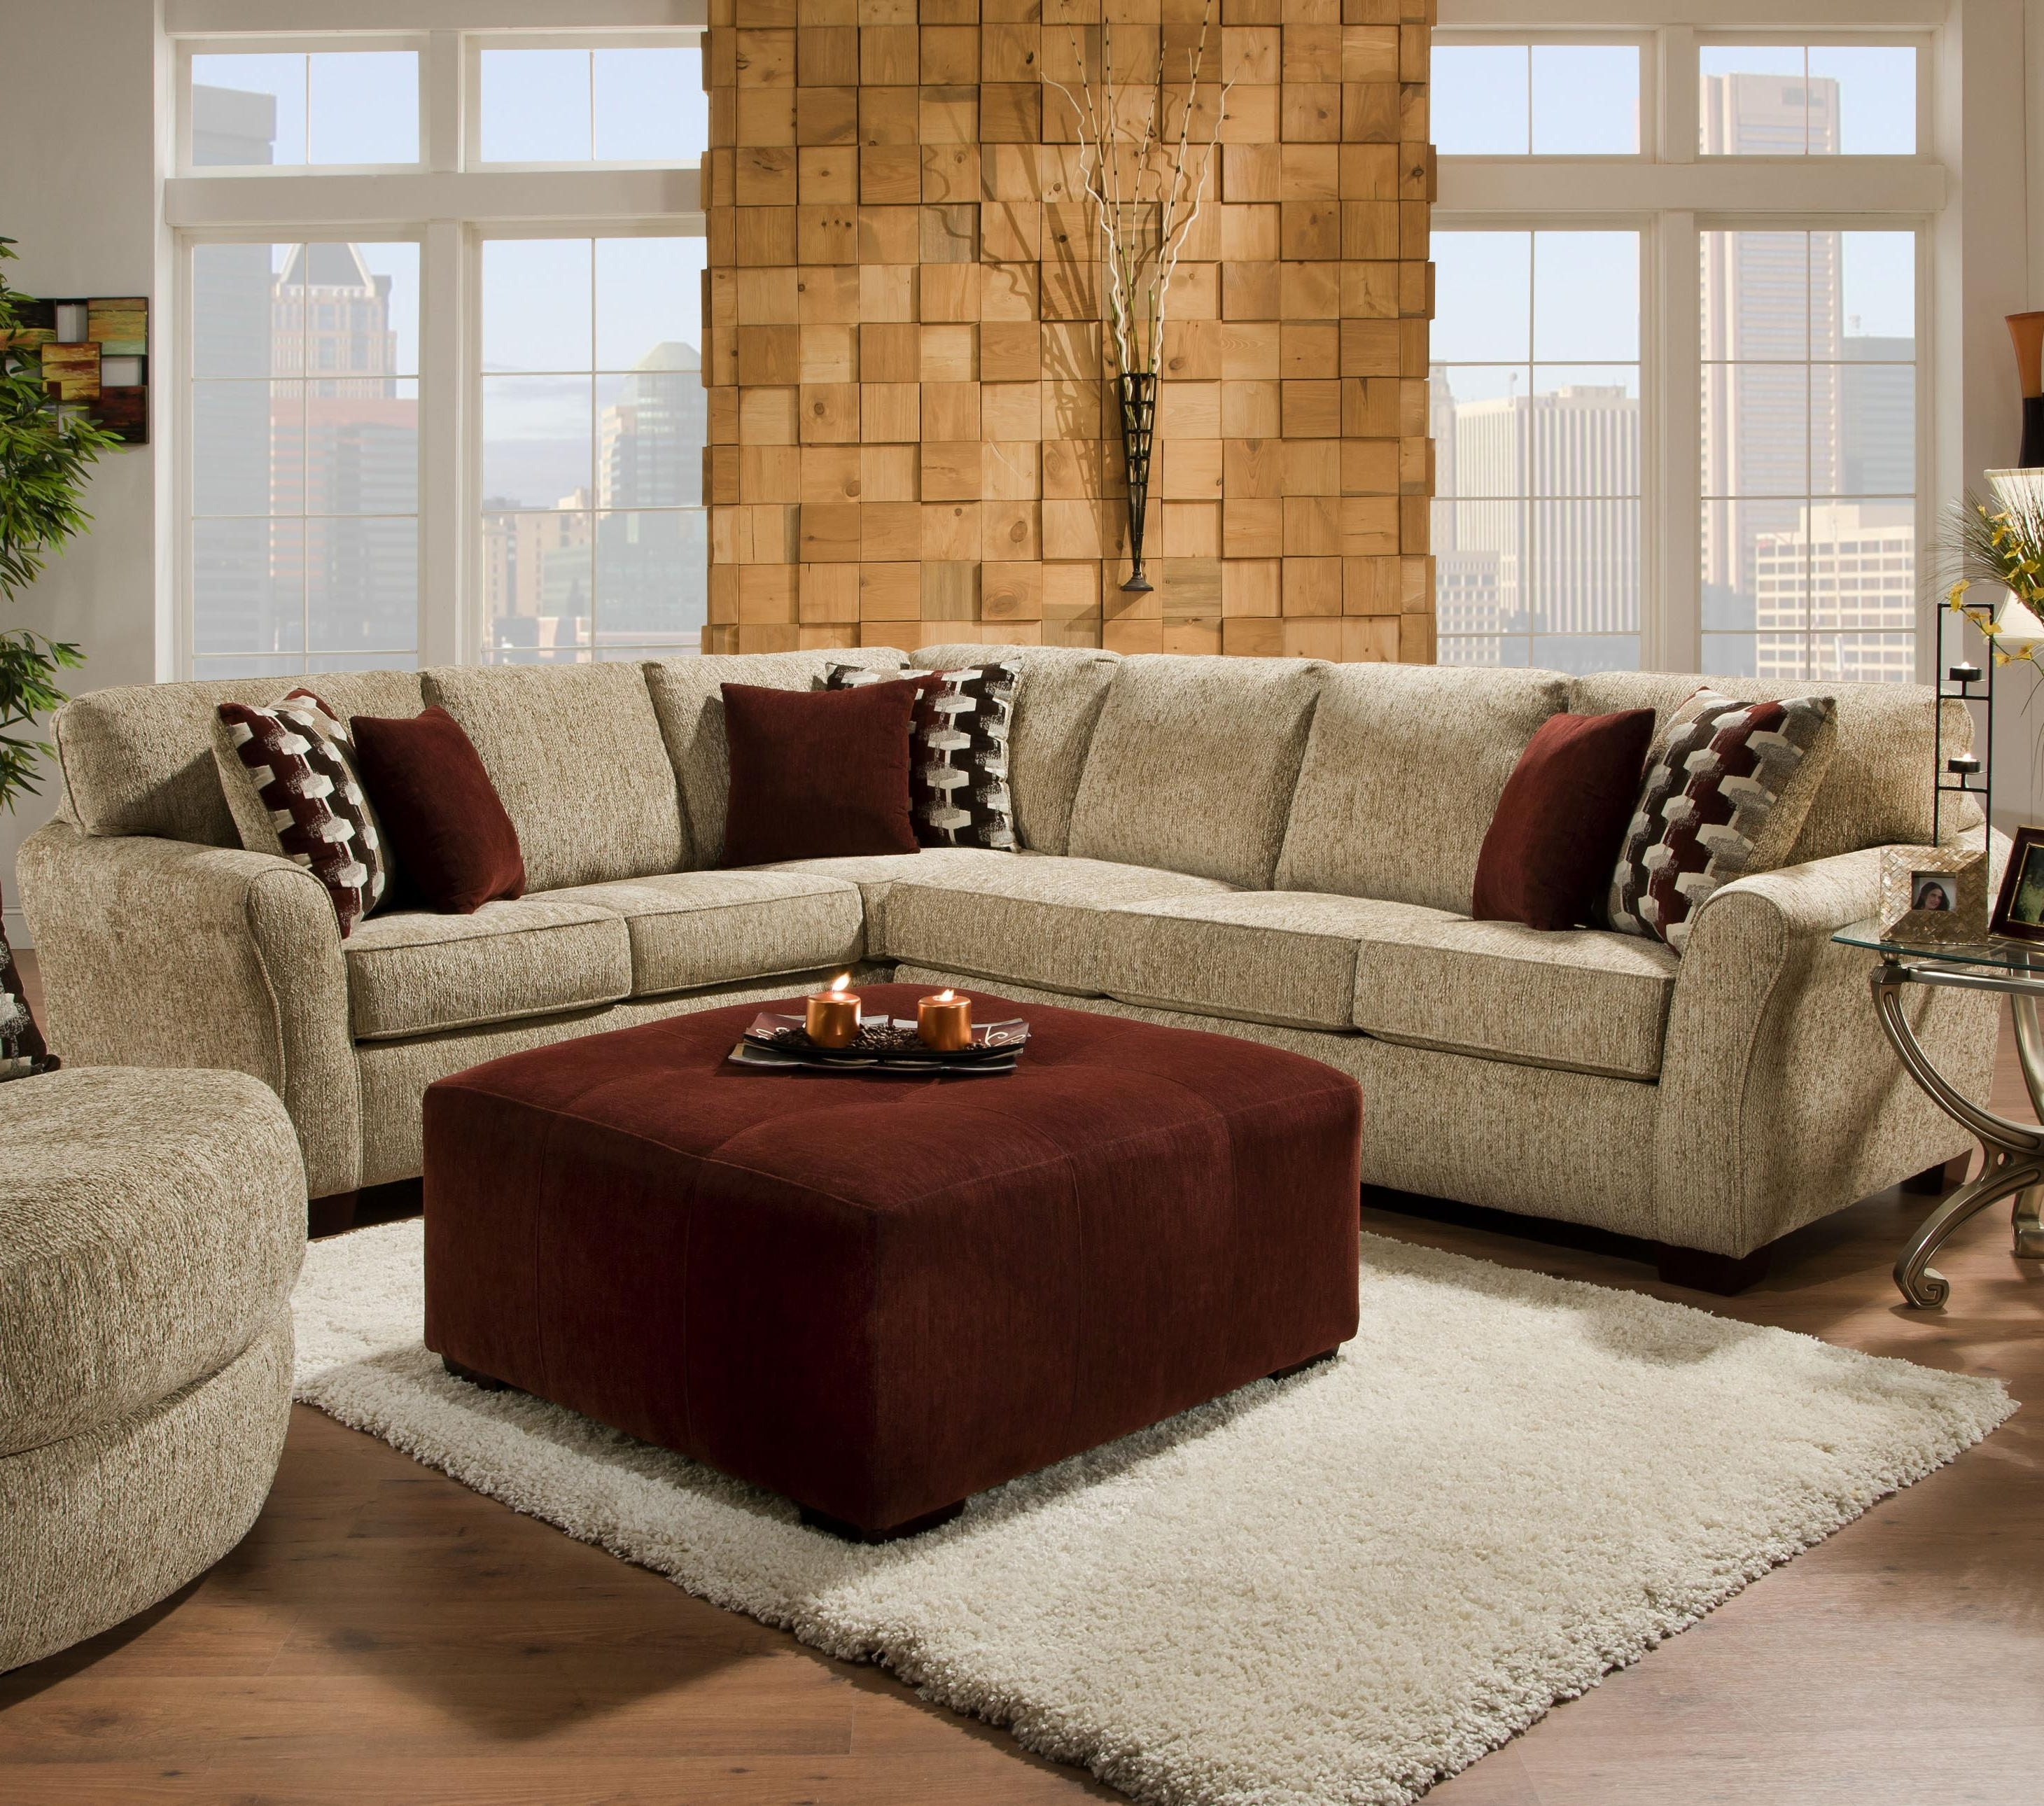 Johnny Janosik Sectional Sofas Throughout Most Up To Date 2500 Contemporary Styled Sectional Sofa With Sleepercorinthian (Gallery 10 of 15)